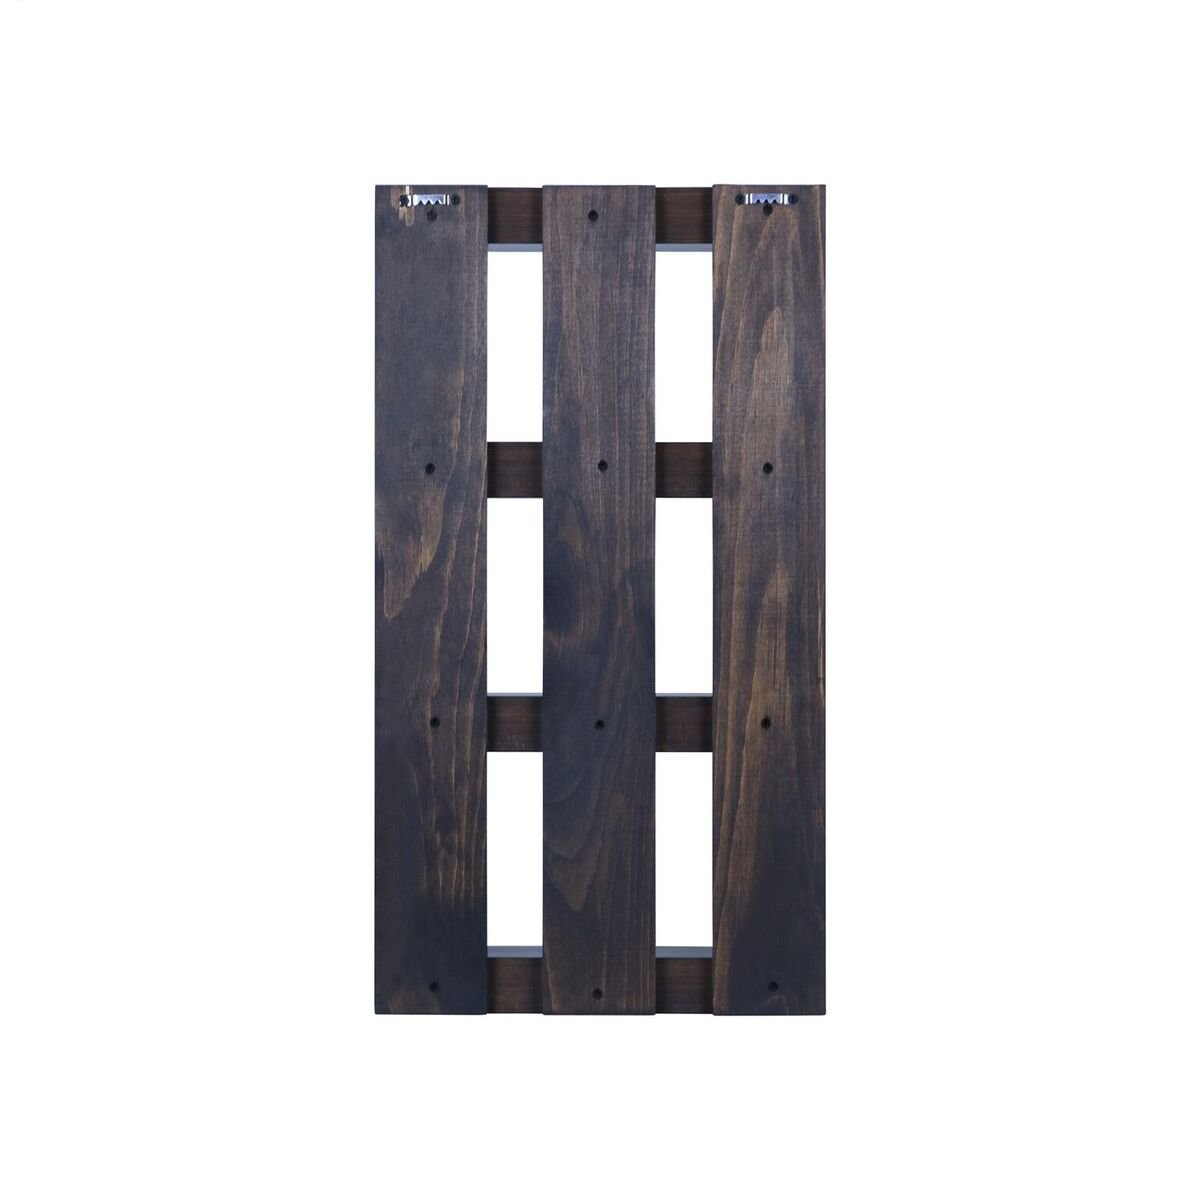 Solid Wood 4 tier Wall Mount Shelves Home Decor Decoration for Bathroom, Living Room, Kitchen and Entryway Made in the USA by Rooms Organized (Expresso, 22'' h x 15'' w x 4.25'' deep) by Rooms Organized (Image #3)